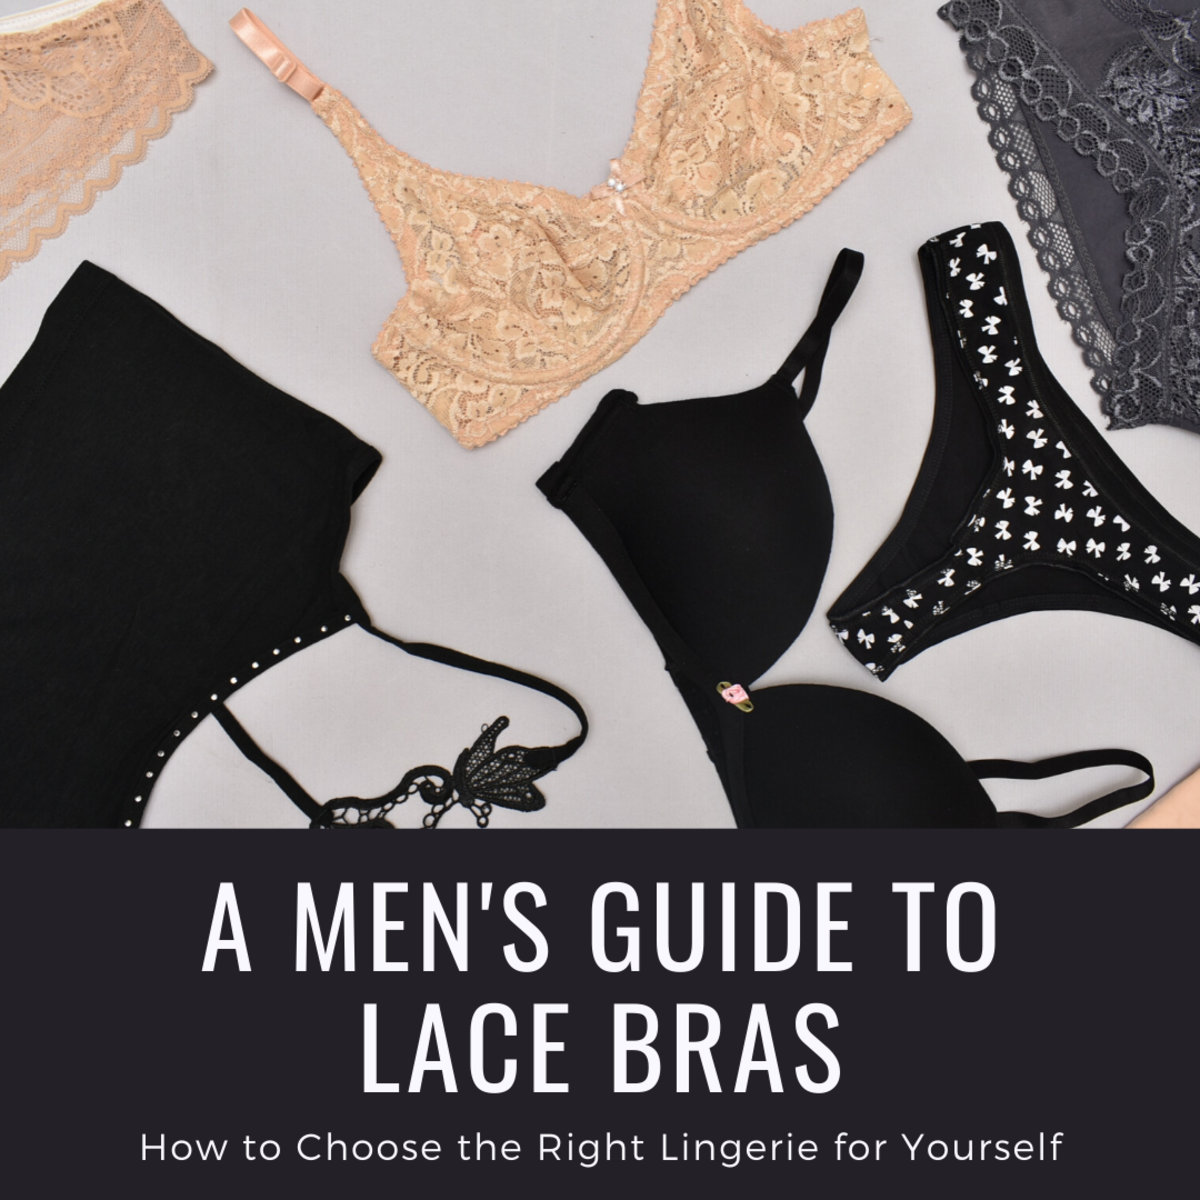 Men in Lingerie: Lace Bras for Men